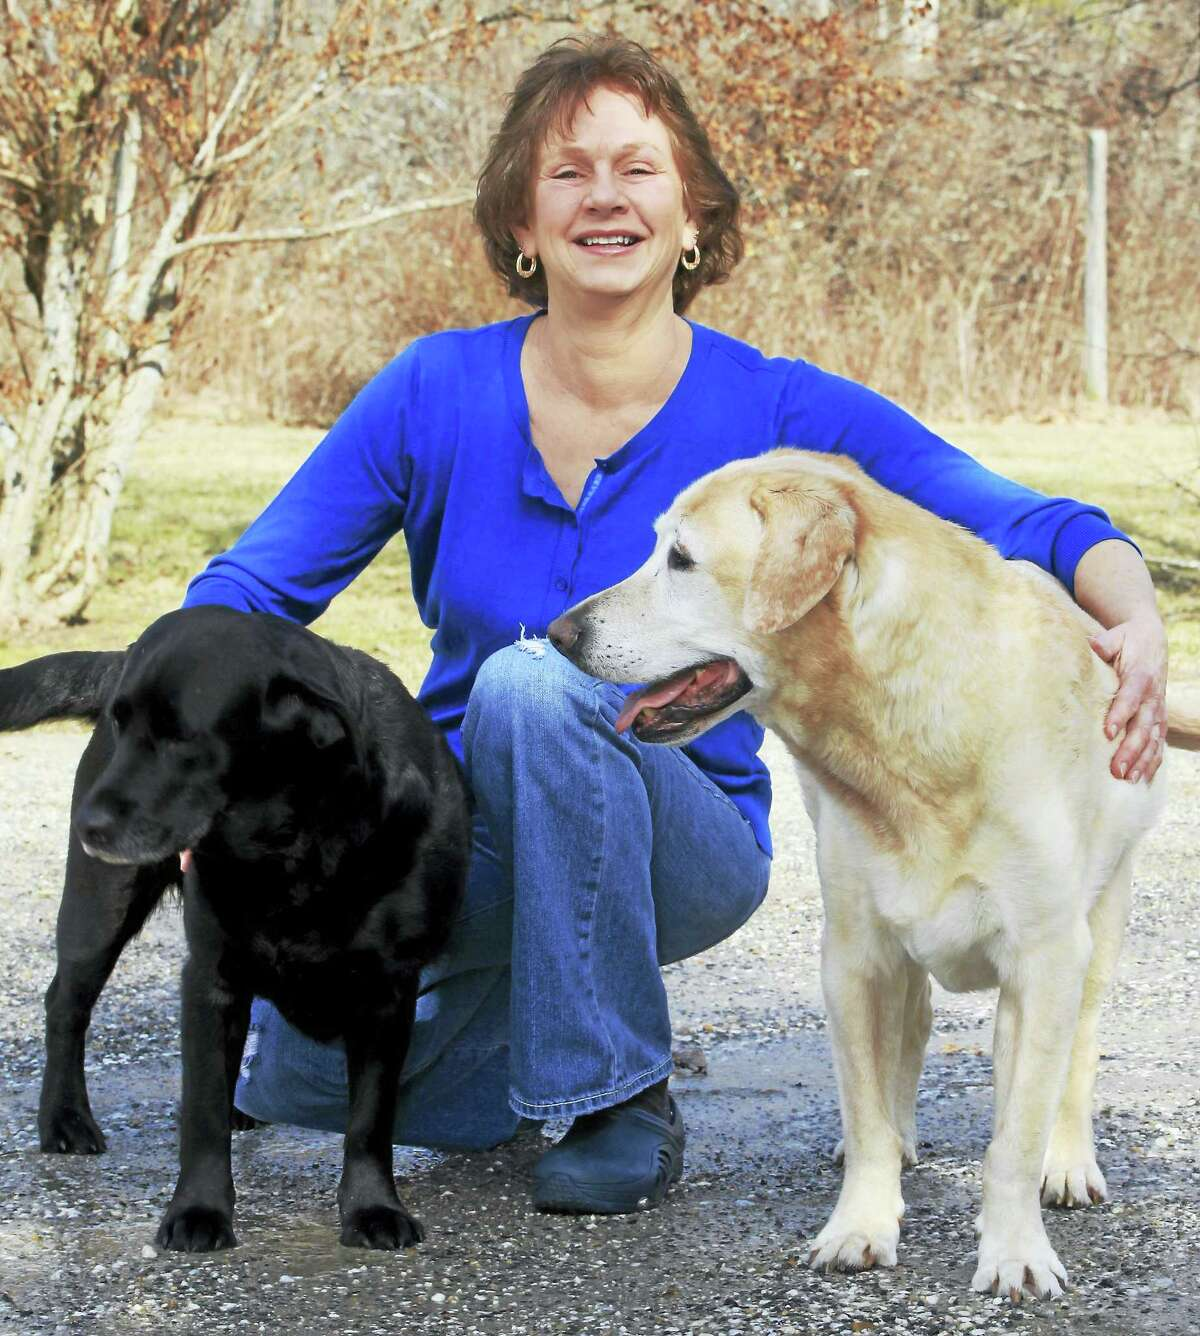 Contributed photo Children's book author Deborah Hewins with a couple of furry friends.